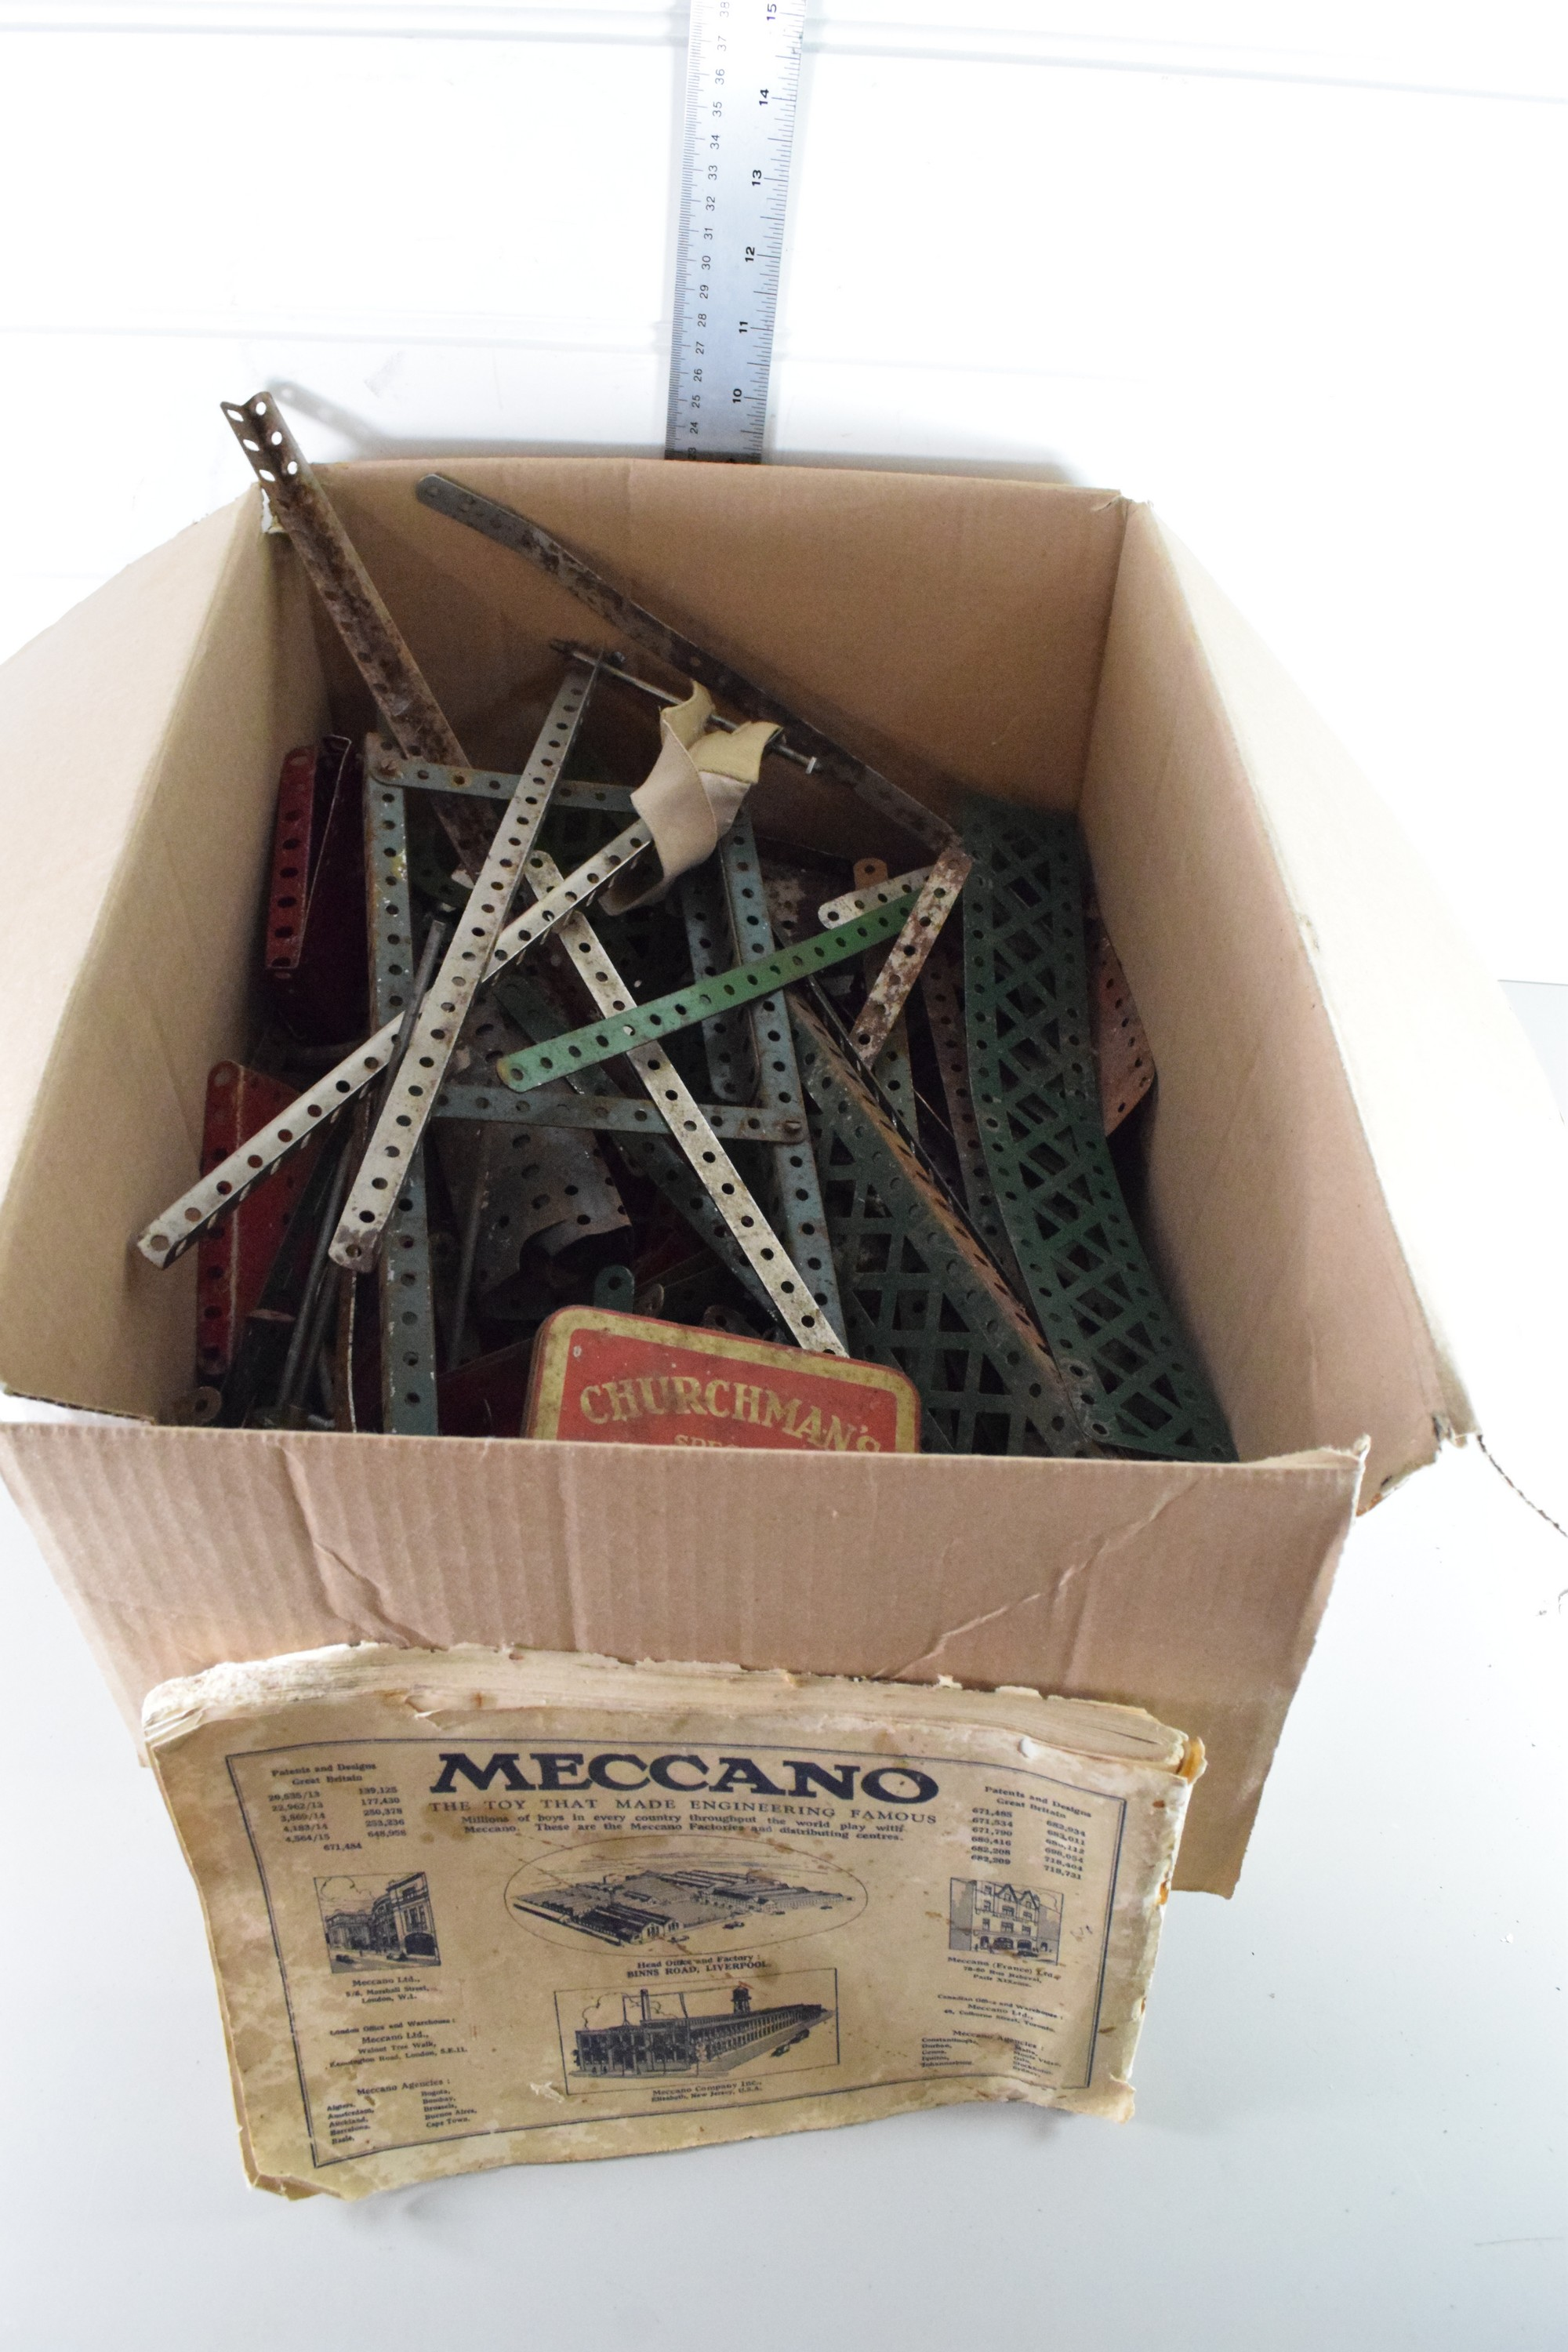 Box containing vintage Meccano and instruction manual